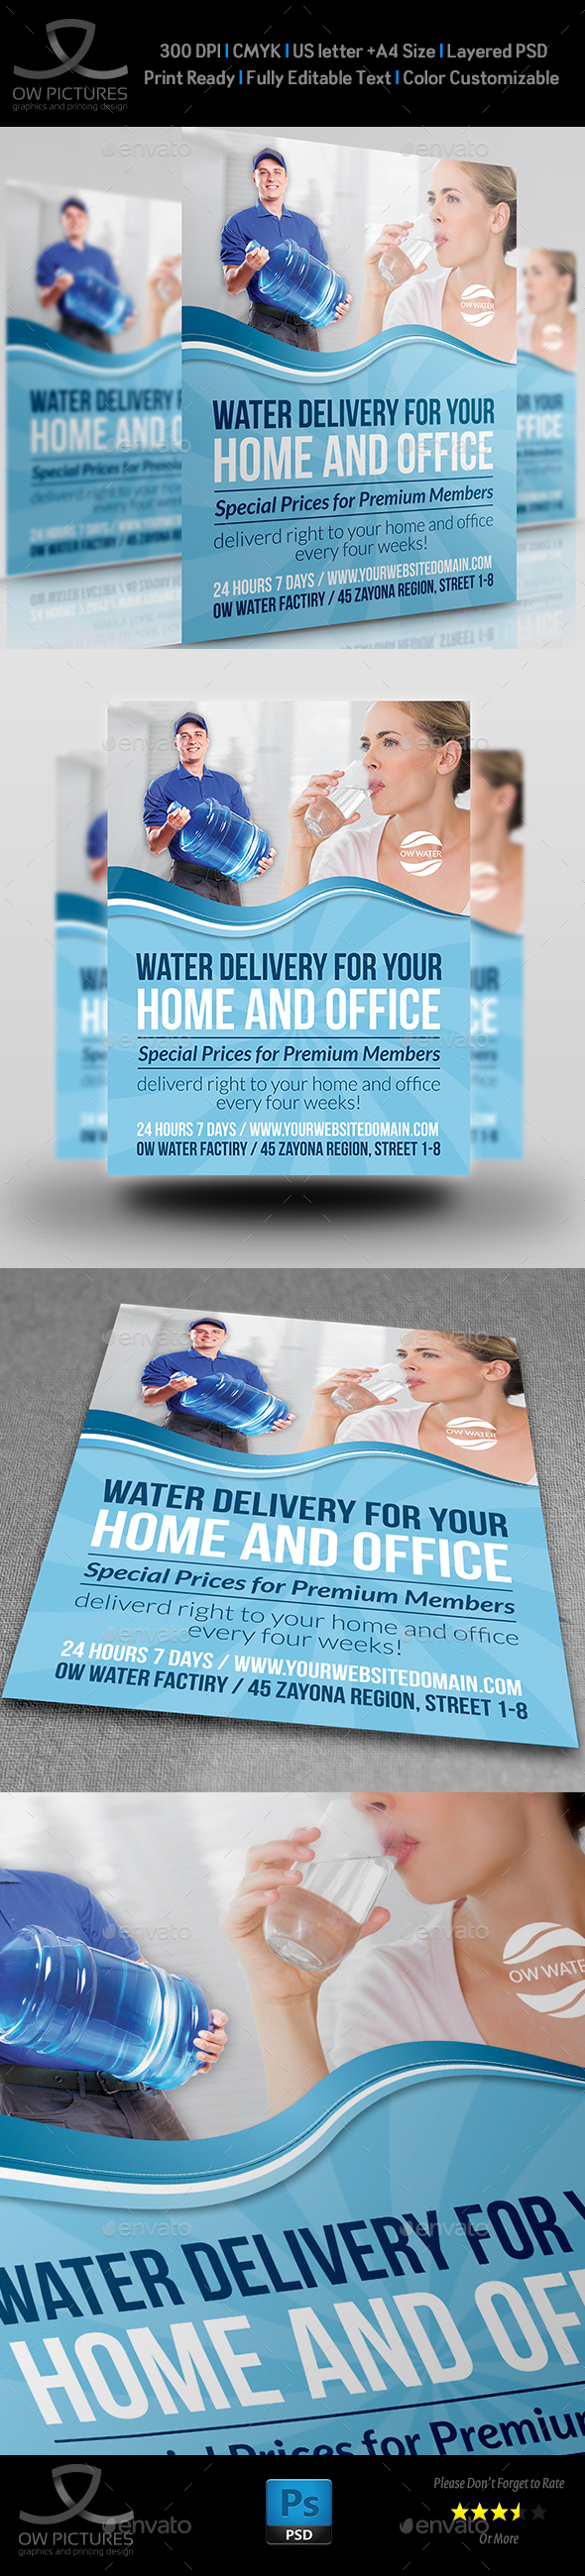 Delivery Drinking Water Service Flyer - Flyers Print Templates